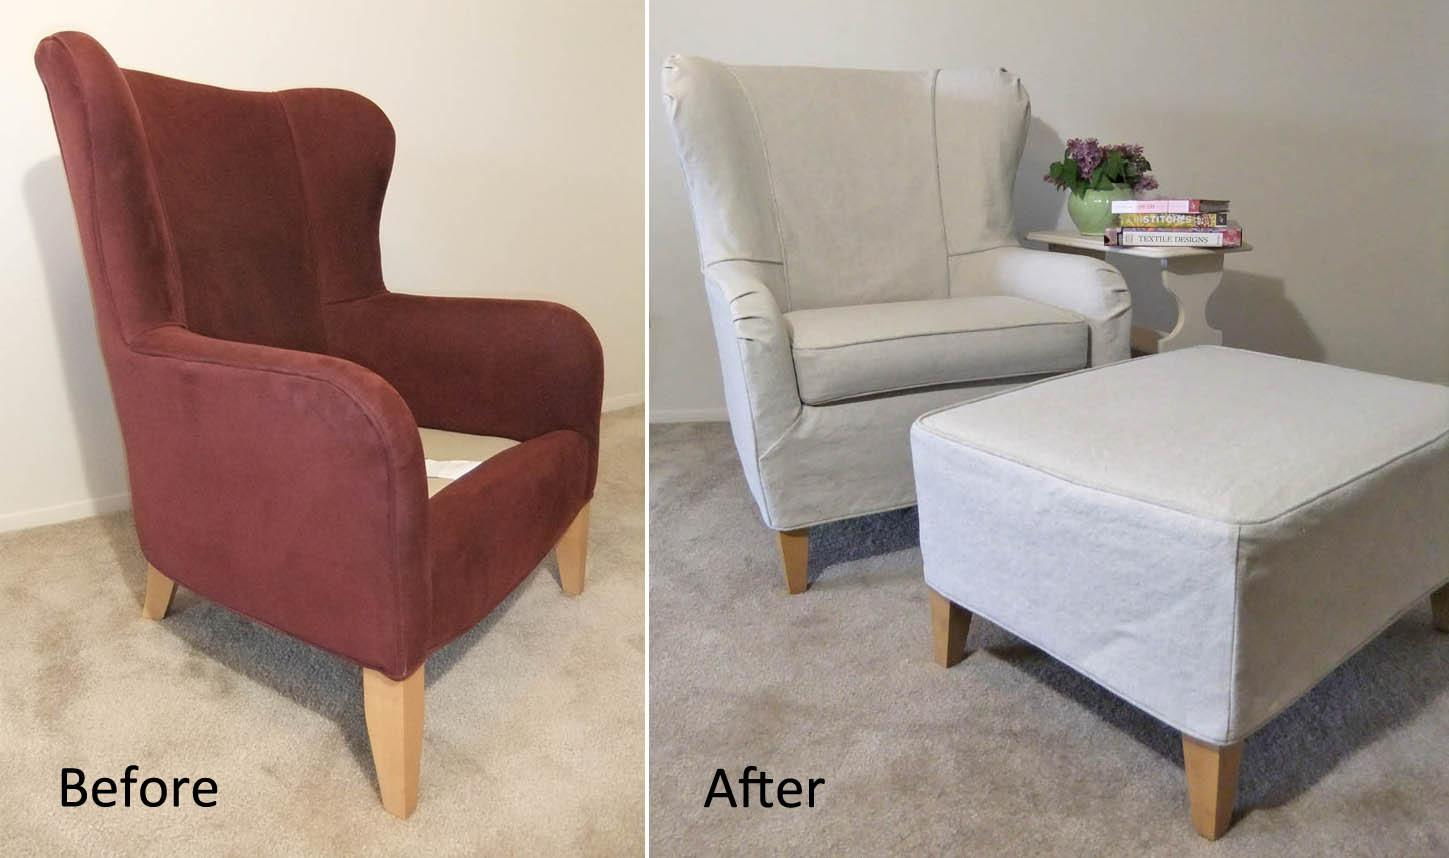 Chair Slipcover Diy Covers Slipcovers Bed